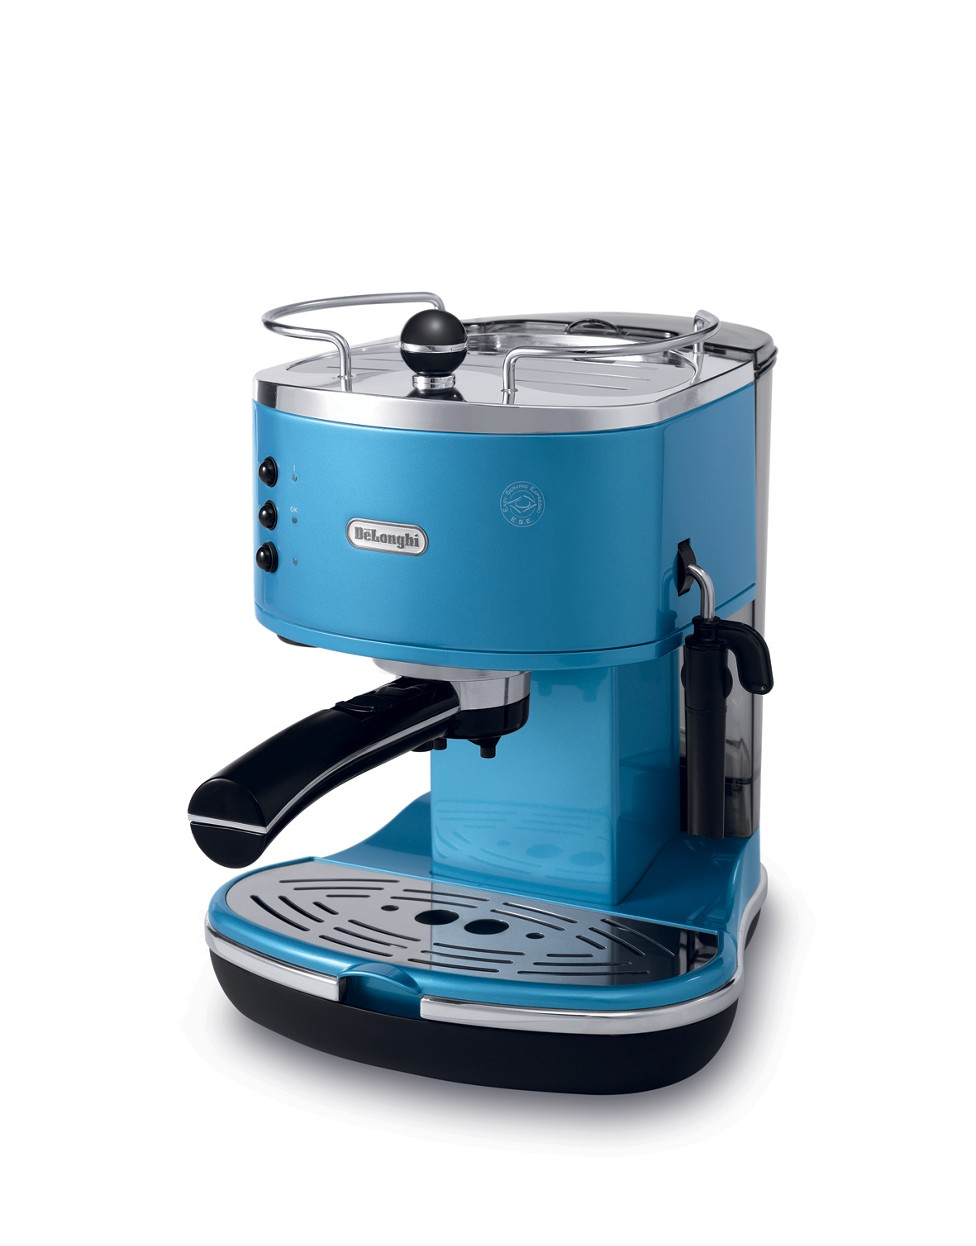 Delonghi Coffee Maker Eco310 : Delonghi ECO310.B Blue Coffee Maker - review, compare prices, buy online